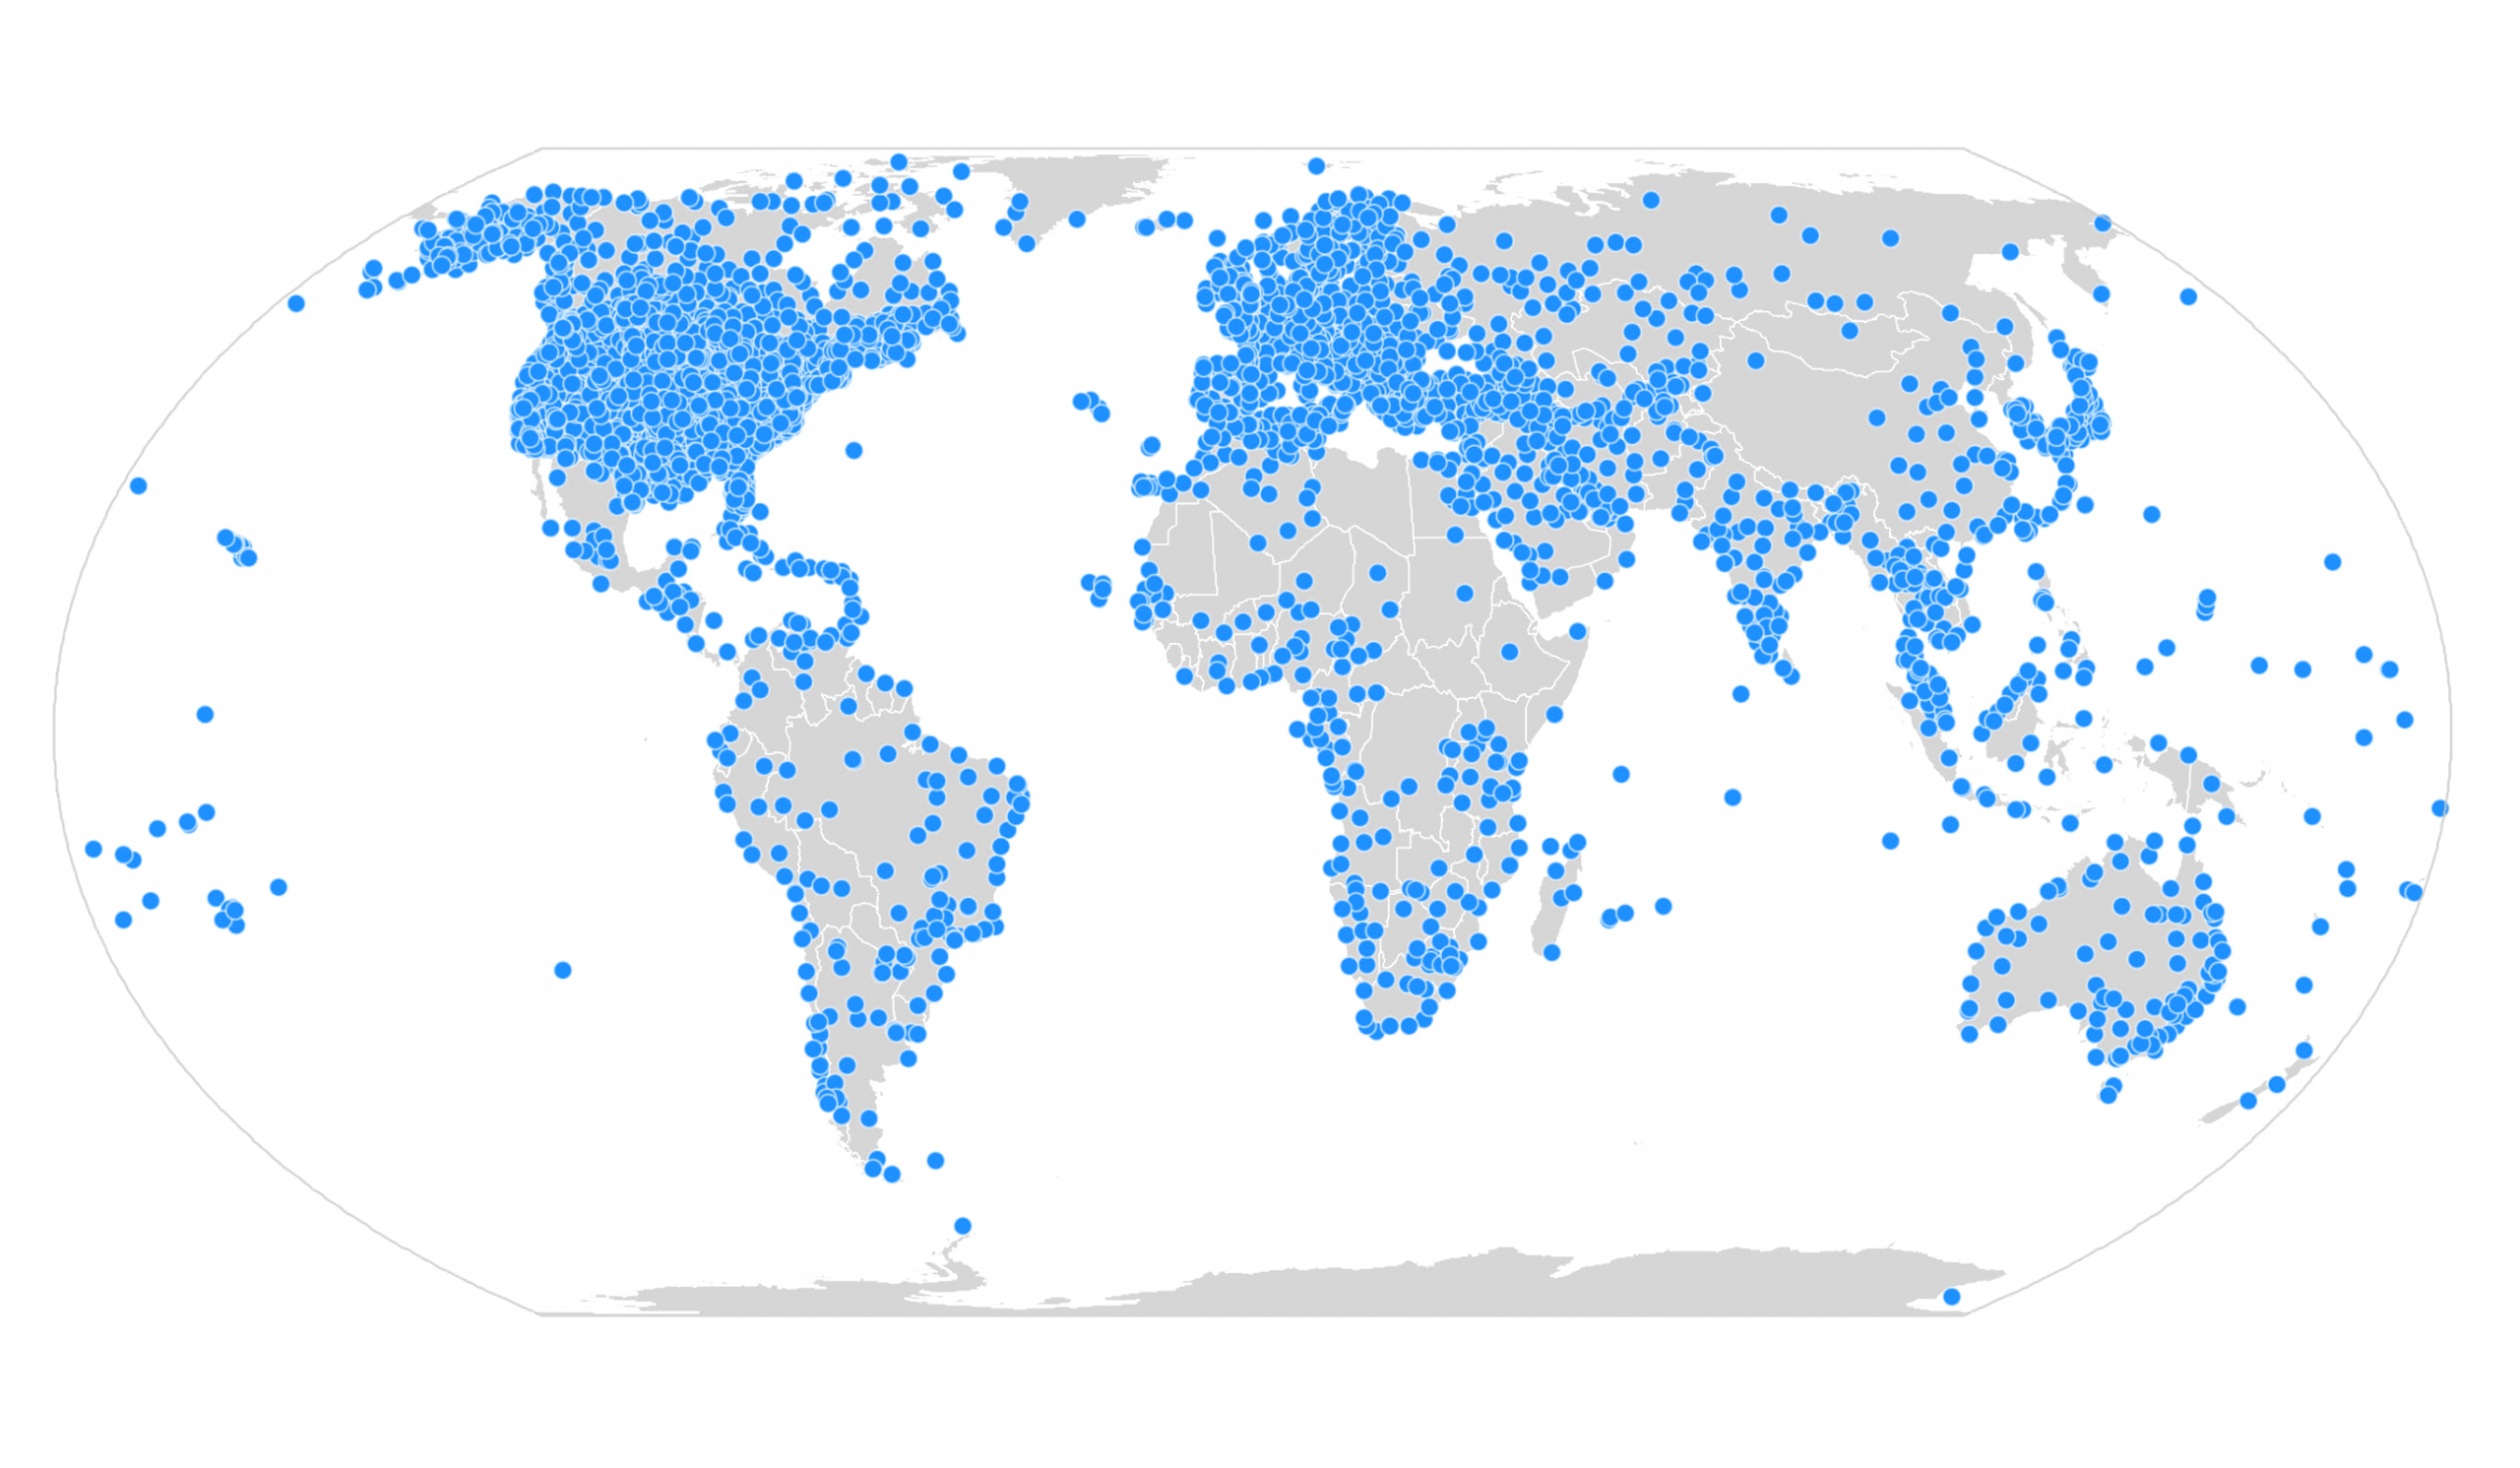 Worldwide weather stations. At 10px each, the points appear too cluttered.